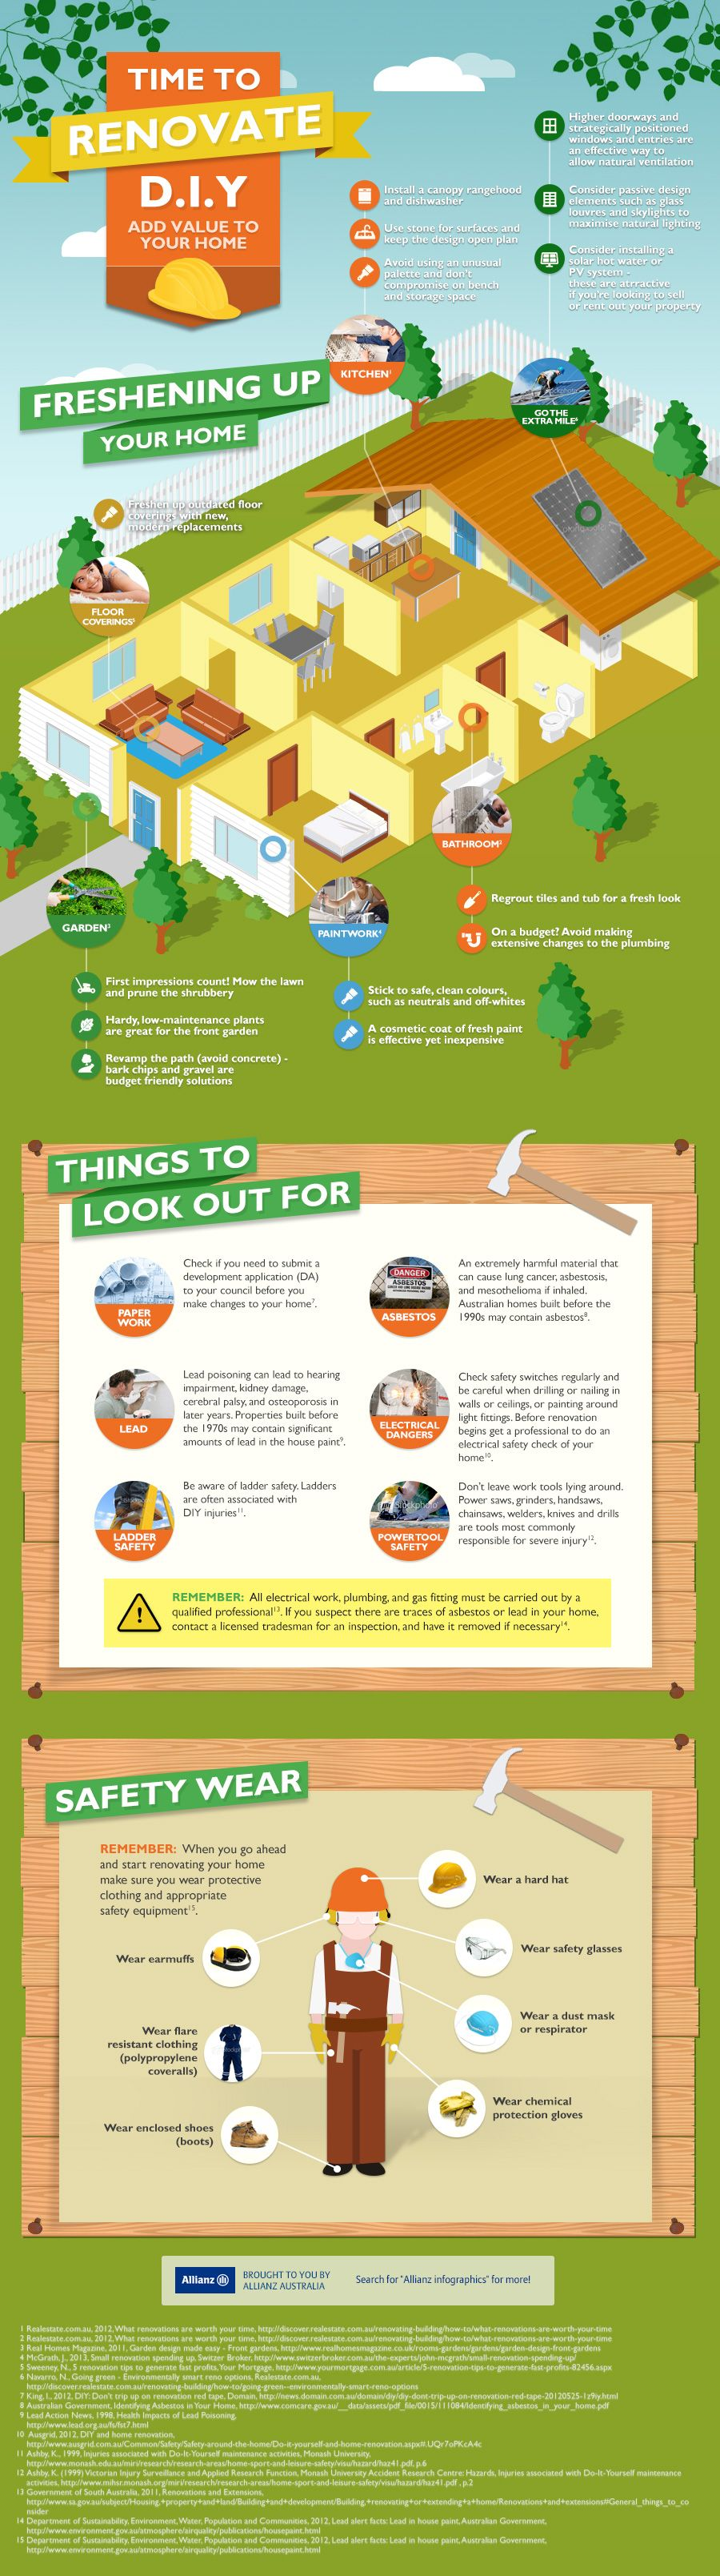 Time To Renovate Infographic Home Insurance Renovations